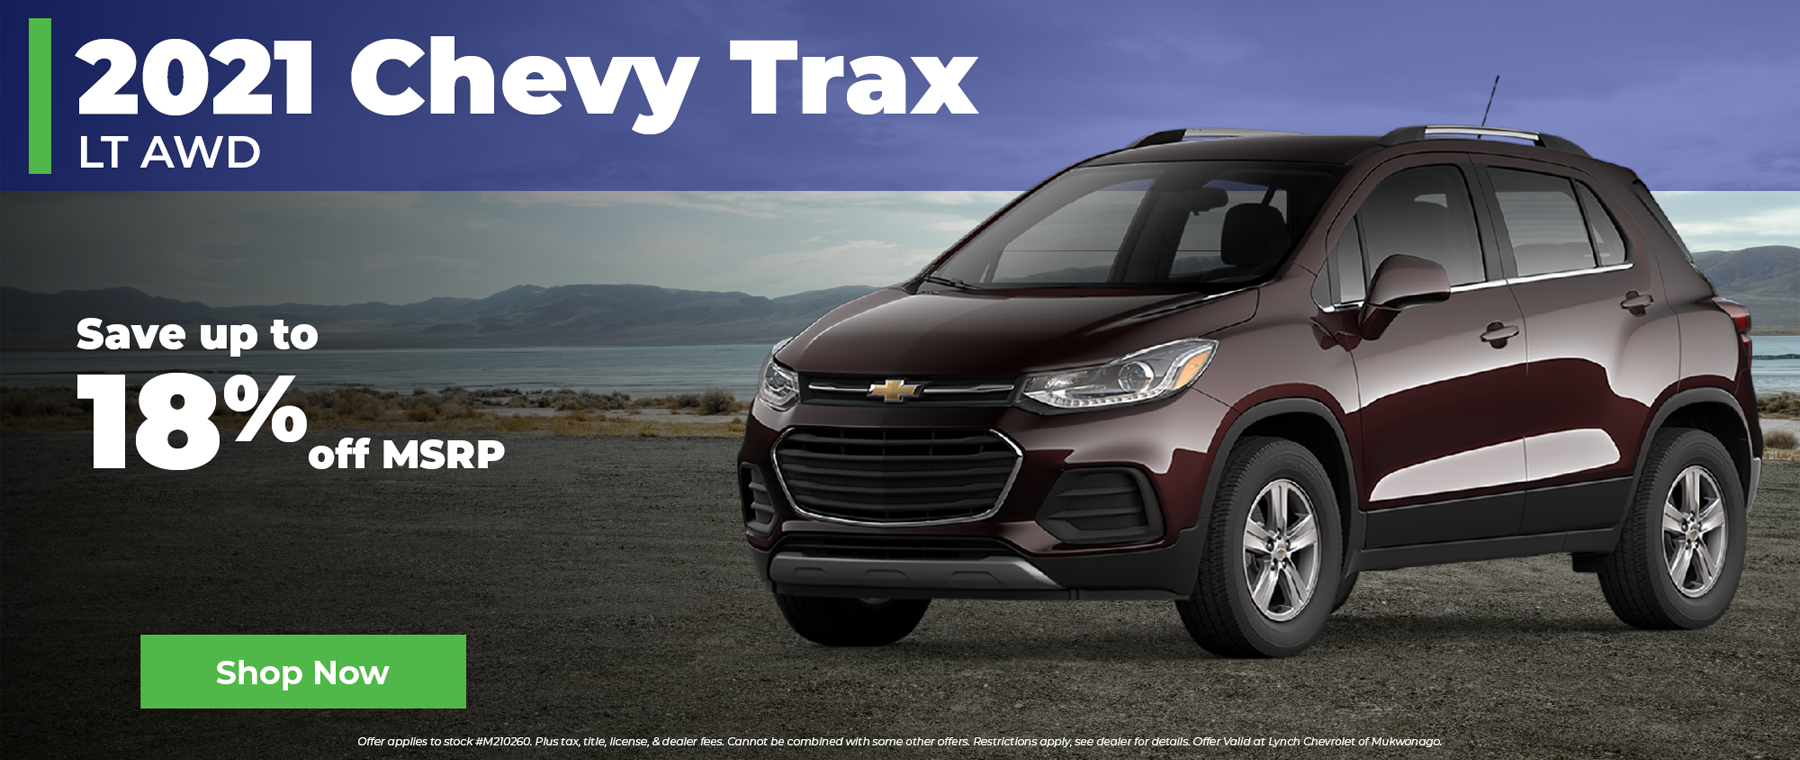 Save 18% off MSRP on a 2021 Chevy Trax in Mukwonago Wisconsin